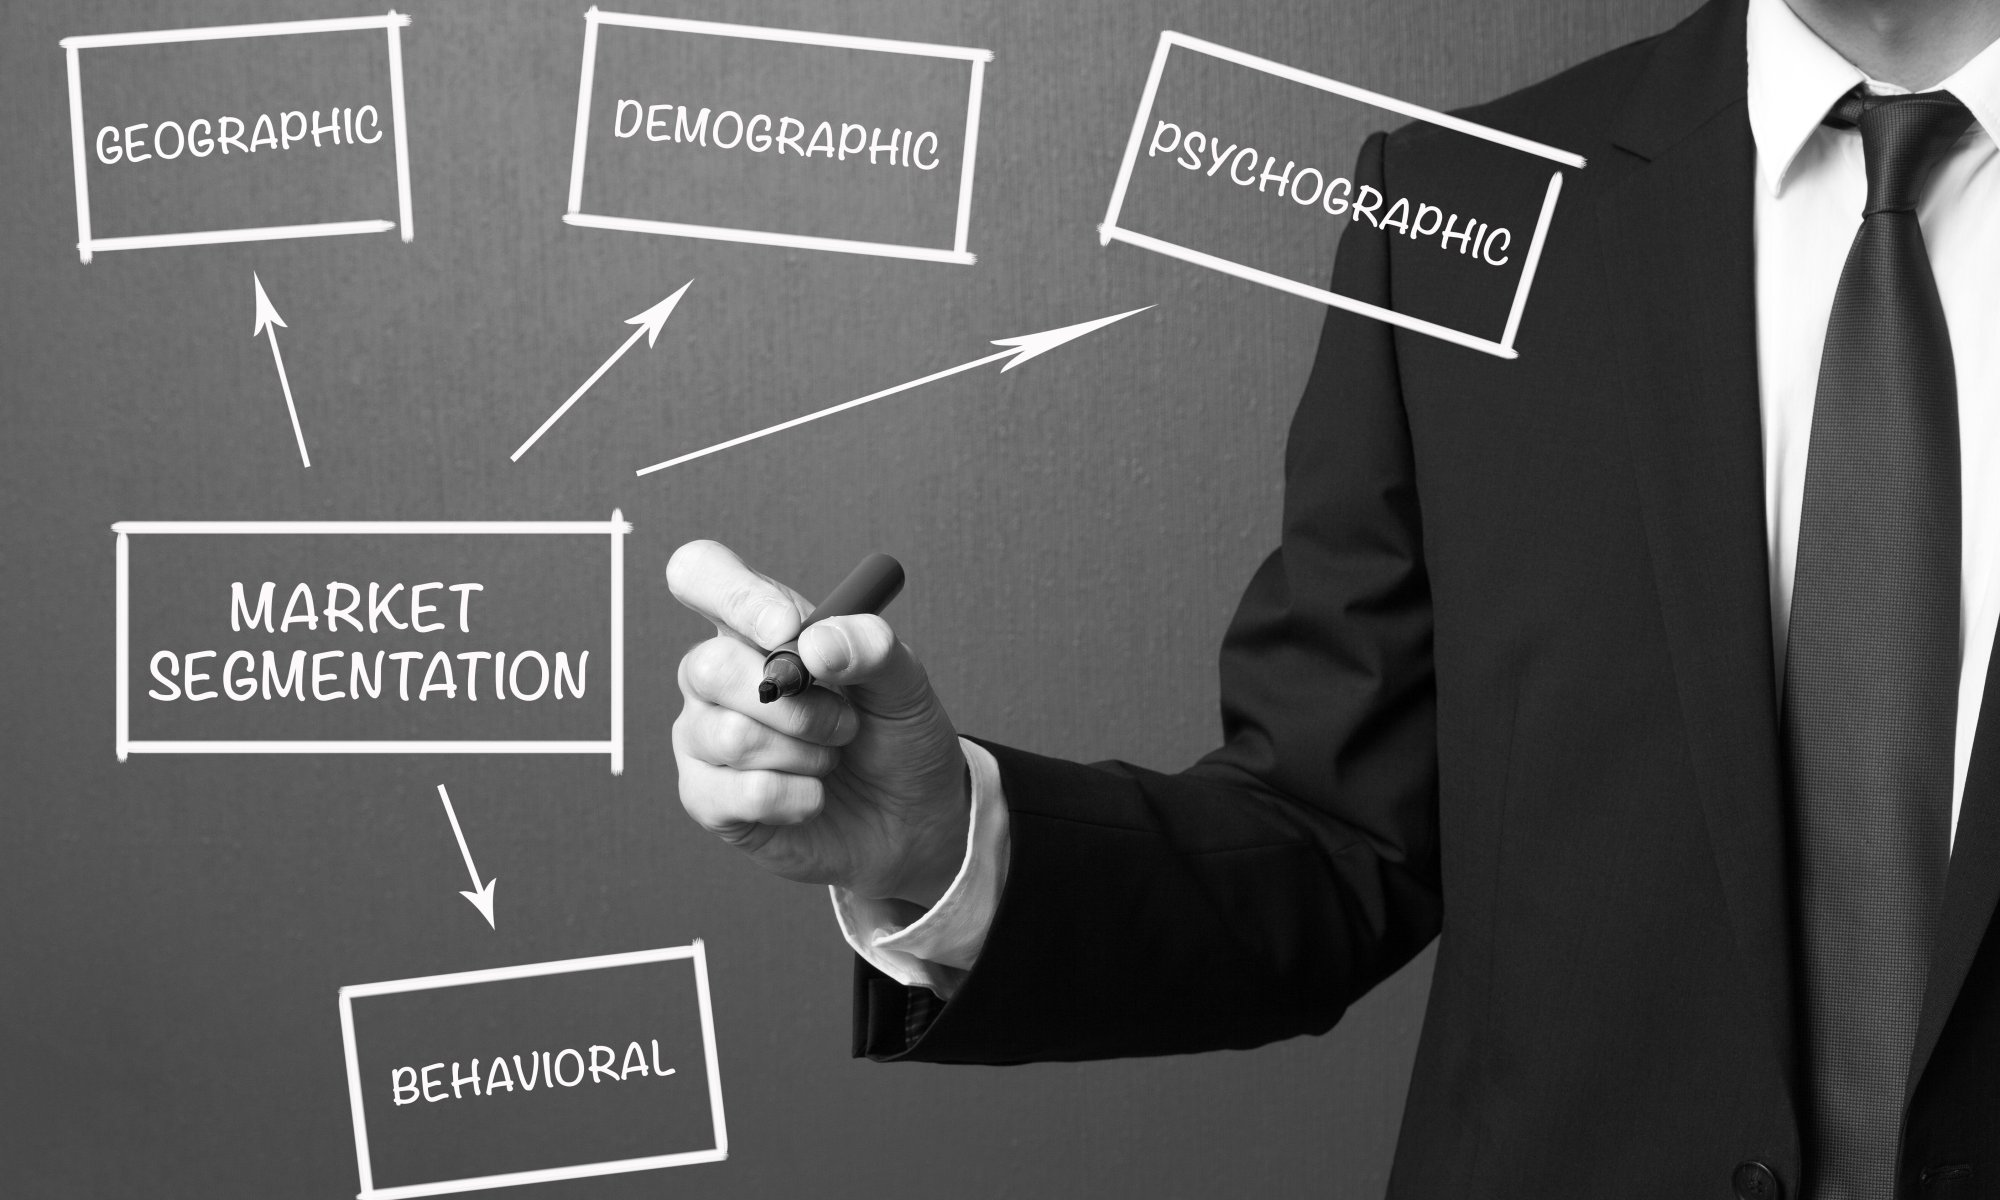 4 market segmentation classifications